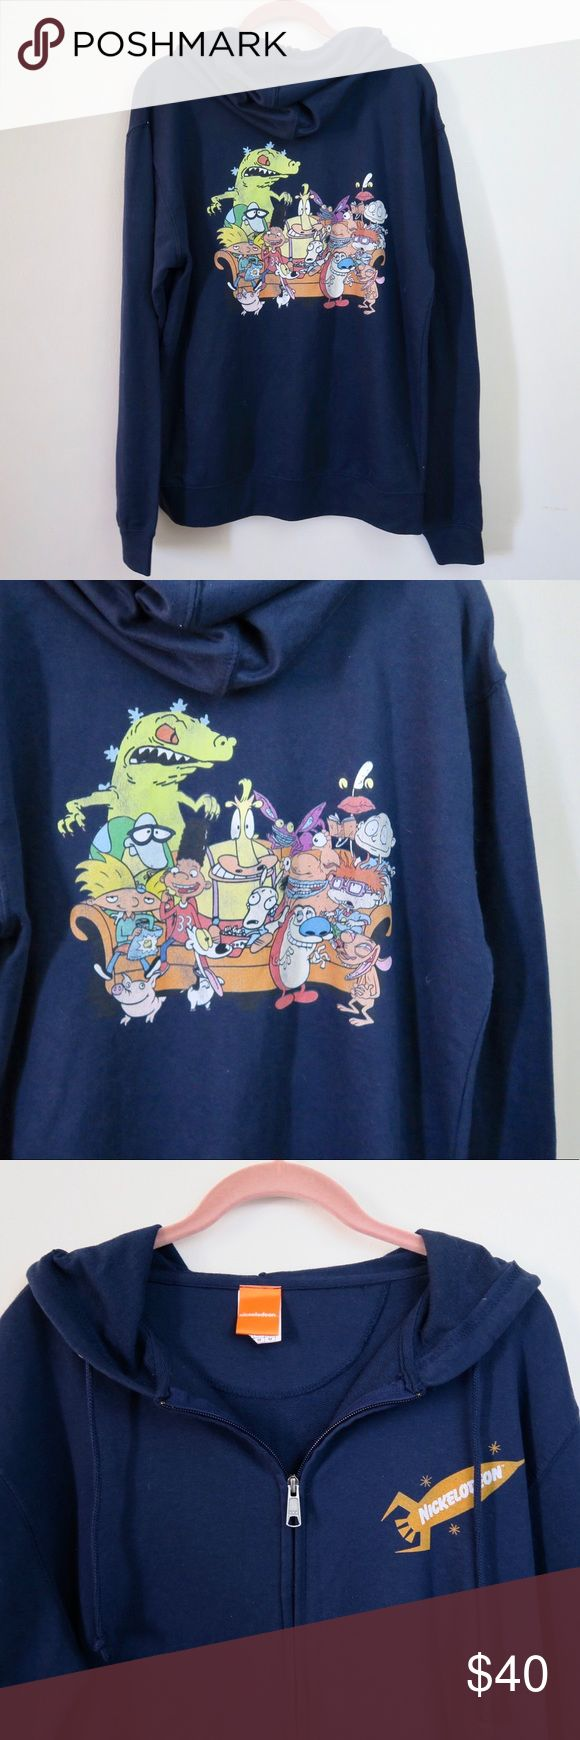 "Nickelodeon 90s Kids Group Hoodie Calling all you 90s kids! Whether your favorite was Rugrats, Aahh!! Real Monsters, Hey Arnold!, or Ren & Stimpy, this is the hoodie for you. This navy zip up hoodie has a vintage screen featuring all of your favorite Nickelodeon characters, and will make you feel just as warm as the rush of nostalgia does.       55% cotton; 45% polyester     +Length: 27"", chest: 22"" across      No flaws. Worn 2x, hung dried not dried in dryer.     Listed in men's sizes…"